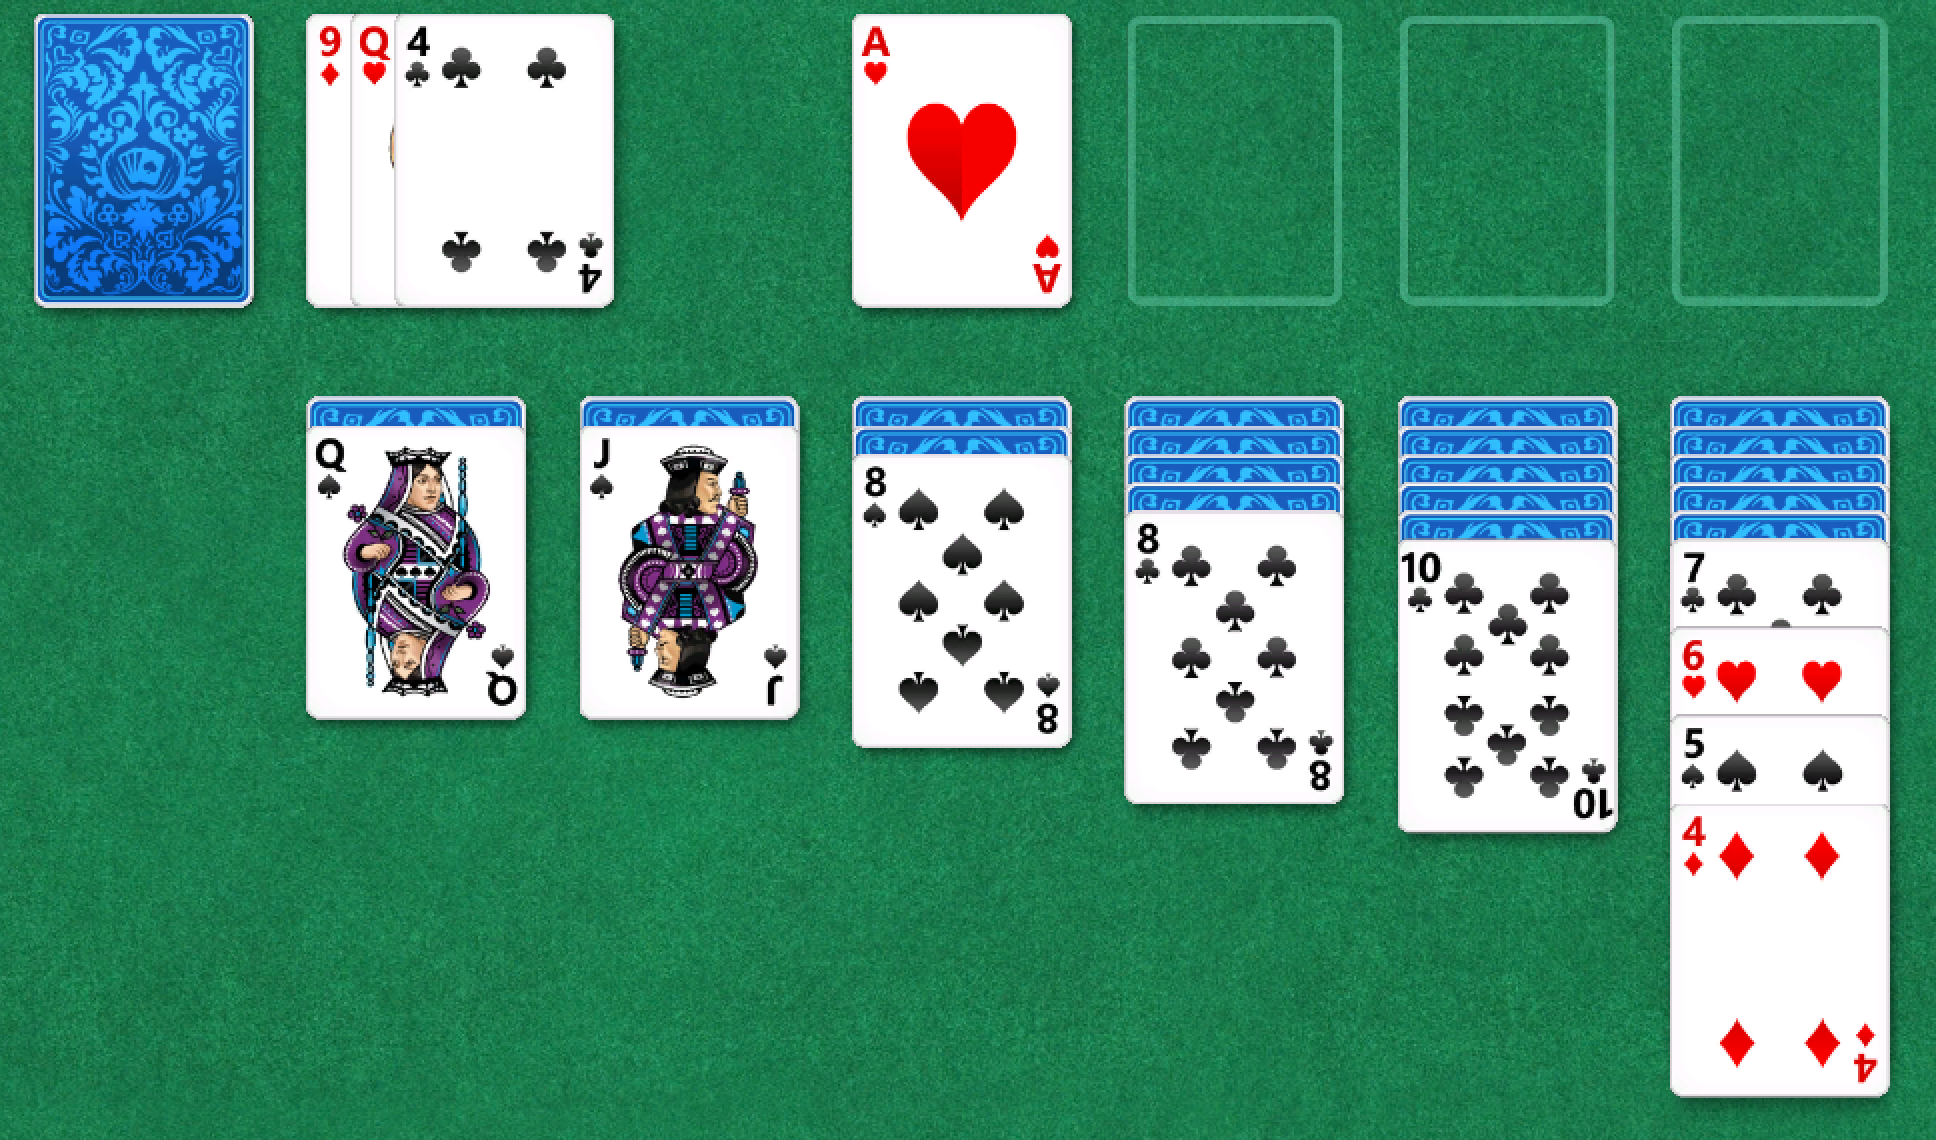 How to Play Solitaire on Windows 10? - Ask Dave Taylor